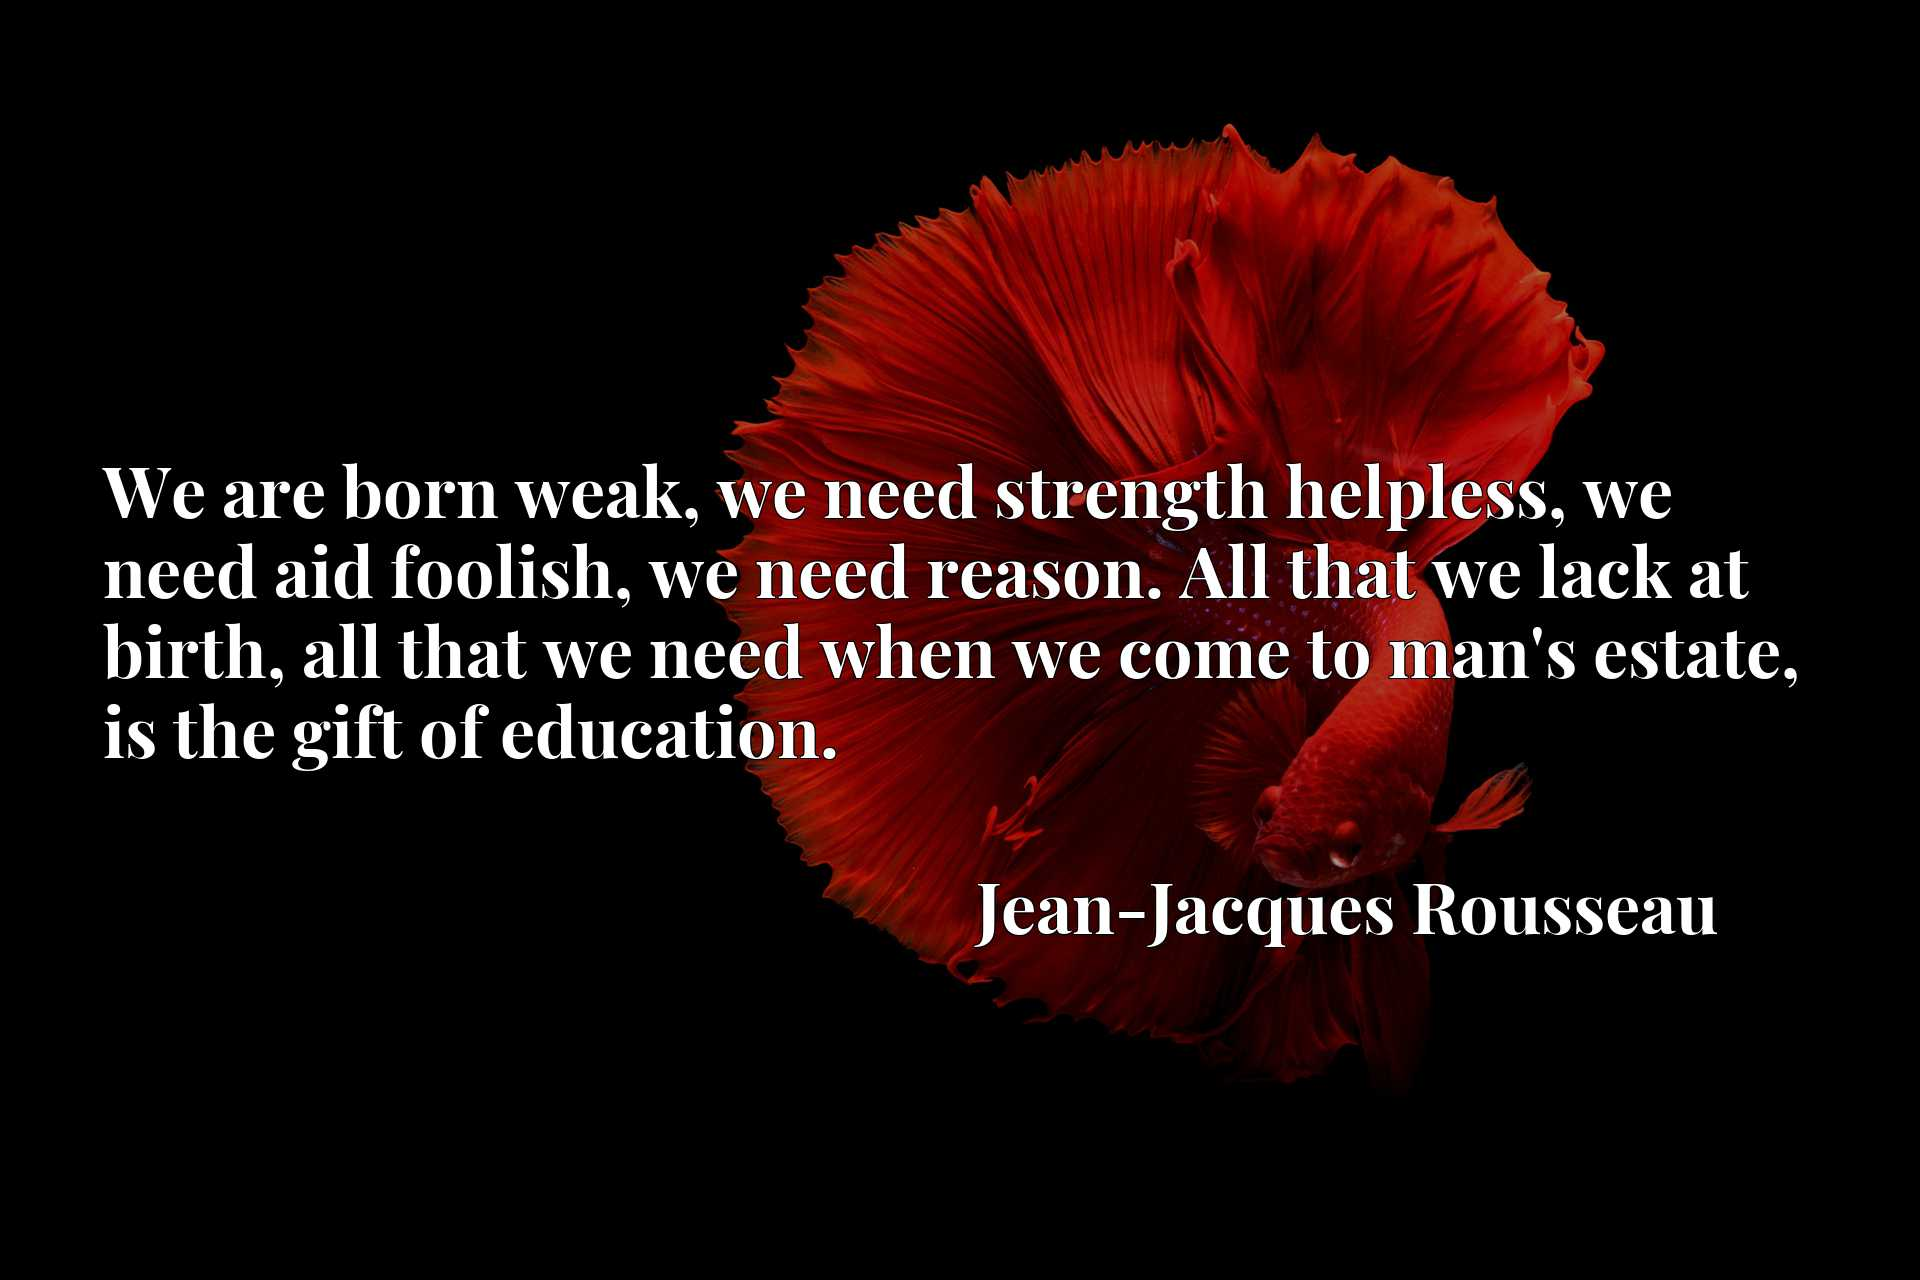 We are born weak, we need strength helpless, we need aid foolish, we need reason. All that we lack at birth, all that we need when we come to man's estate, is the gift of education.